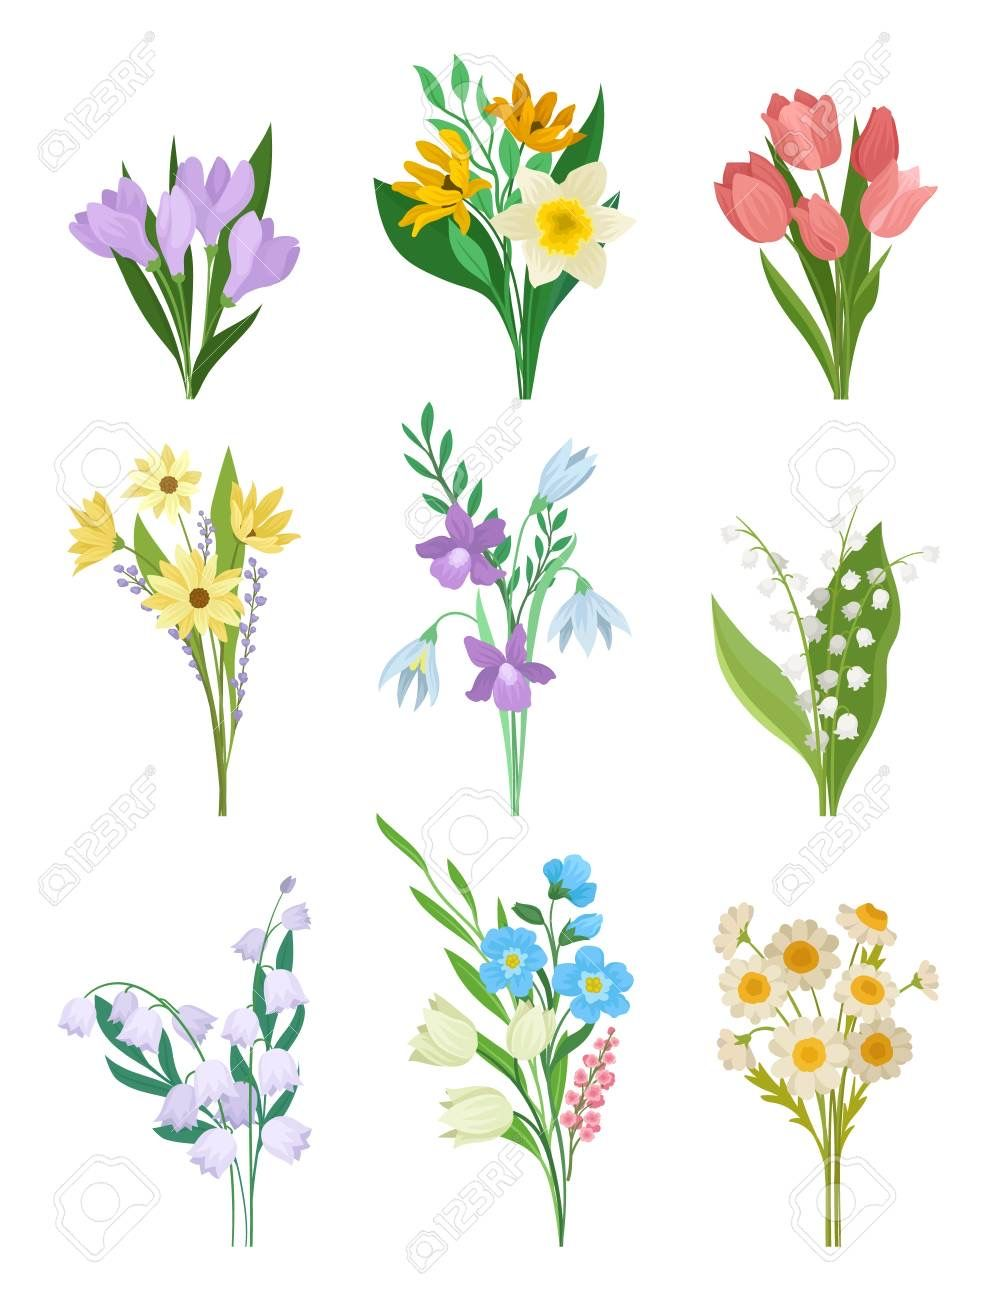 Pin by Cindy Jones on Cute Clipart Spring bouquet